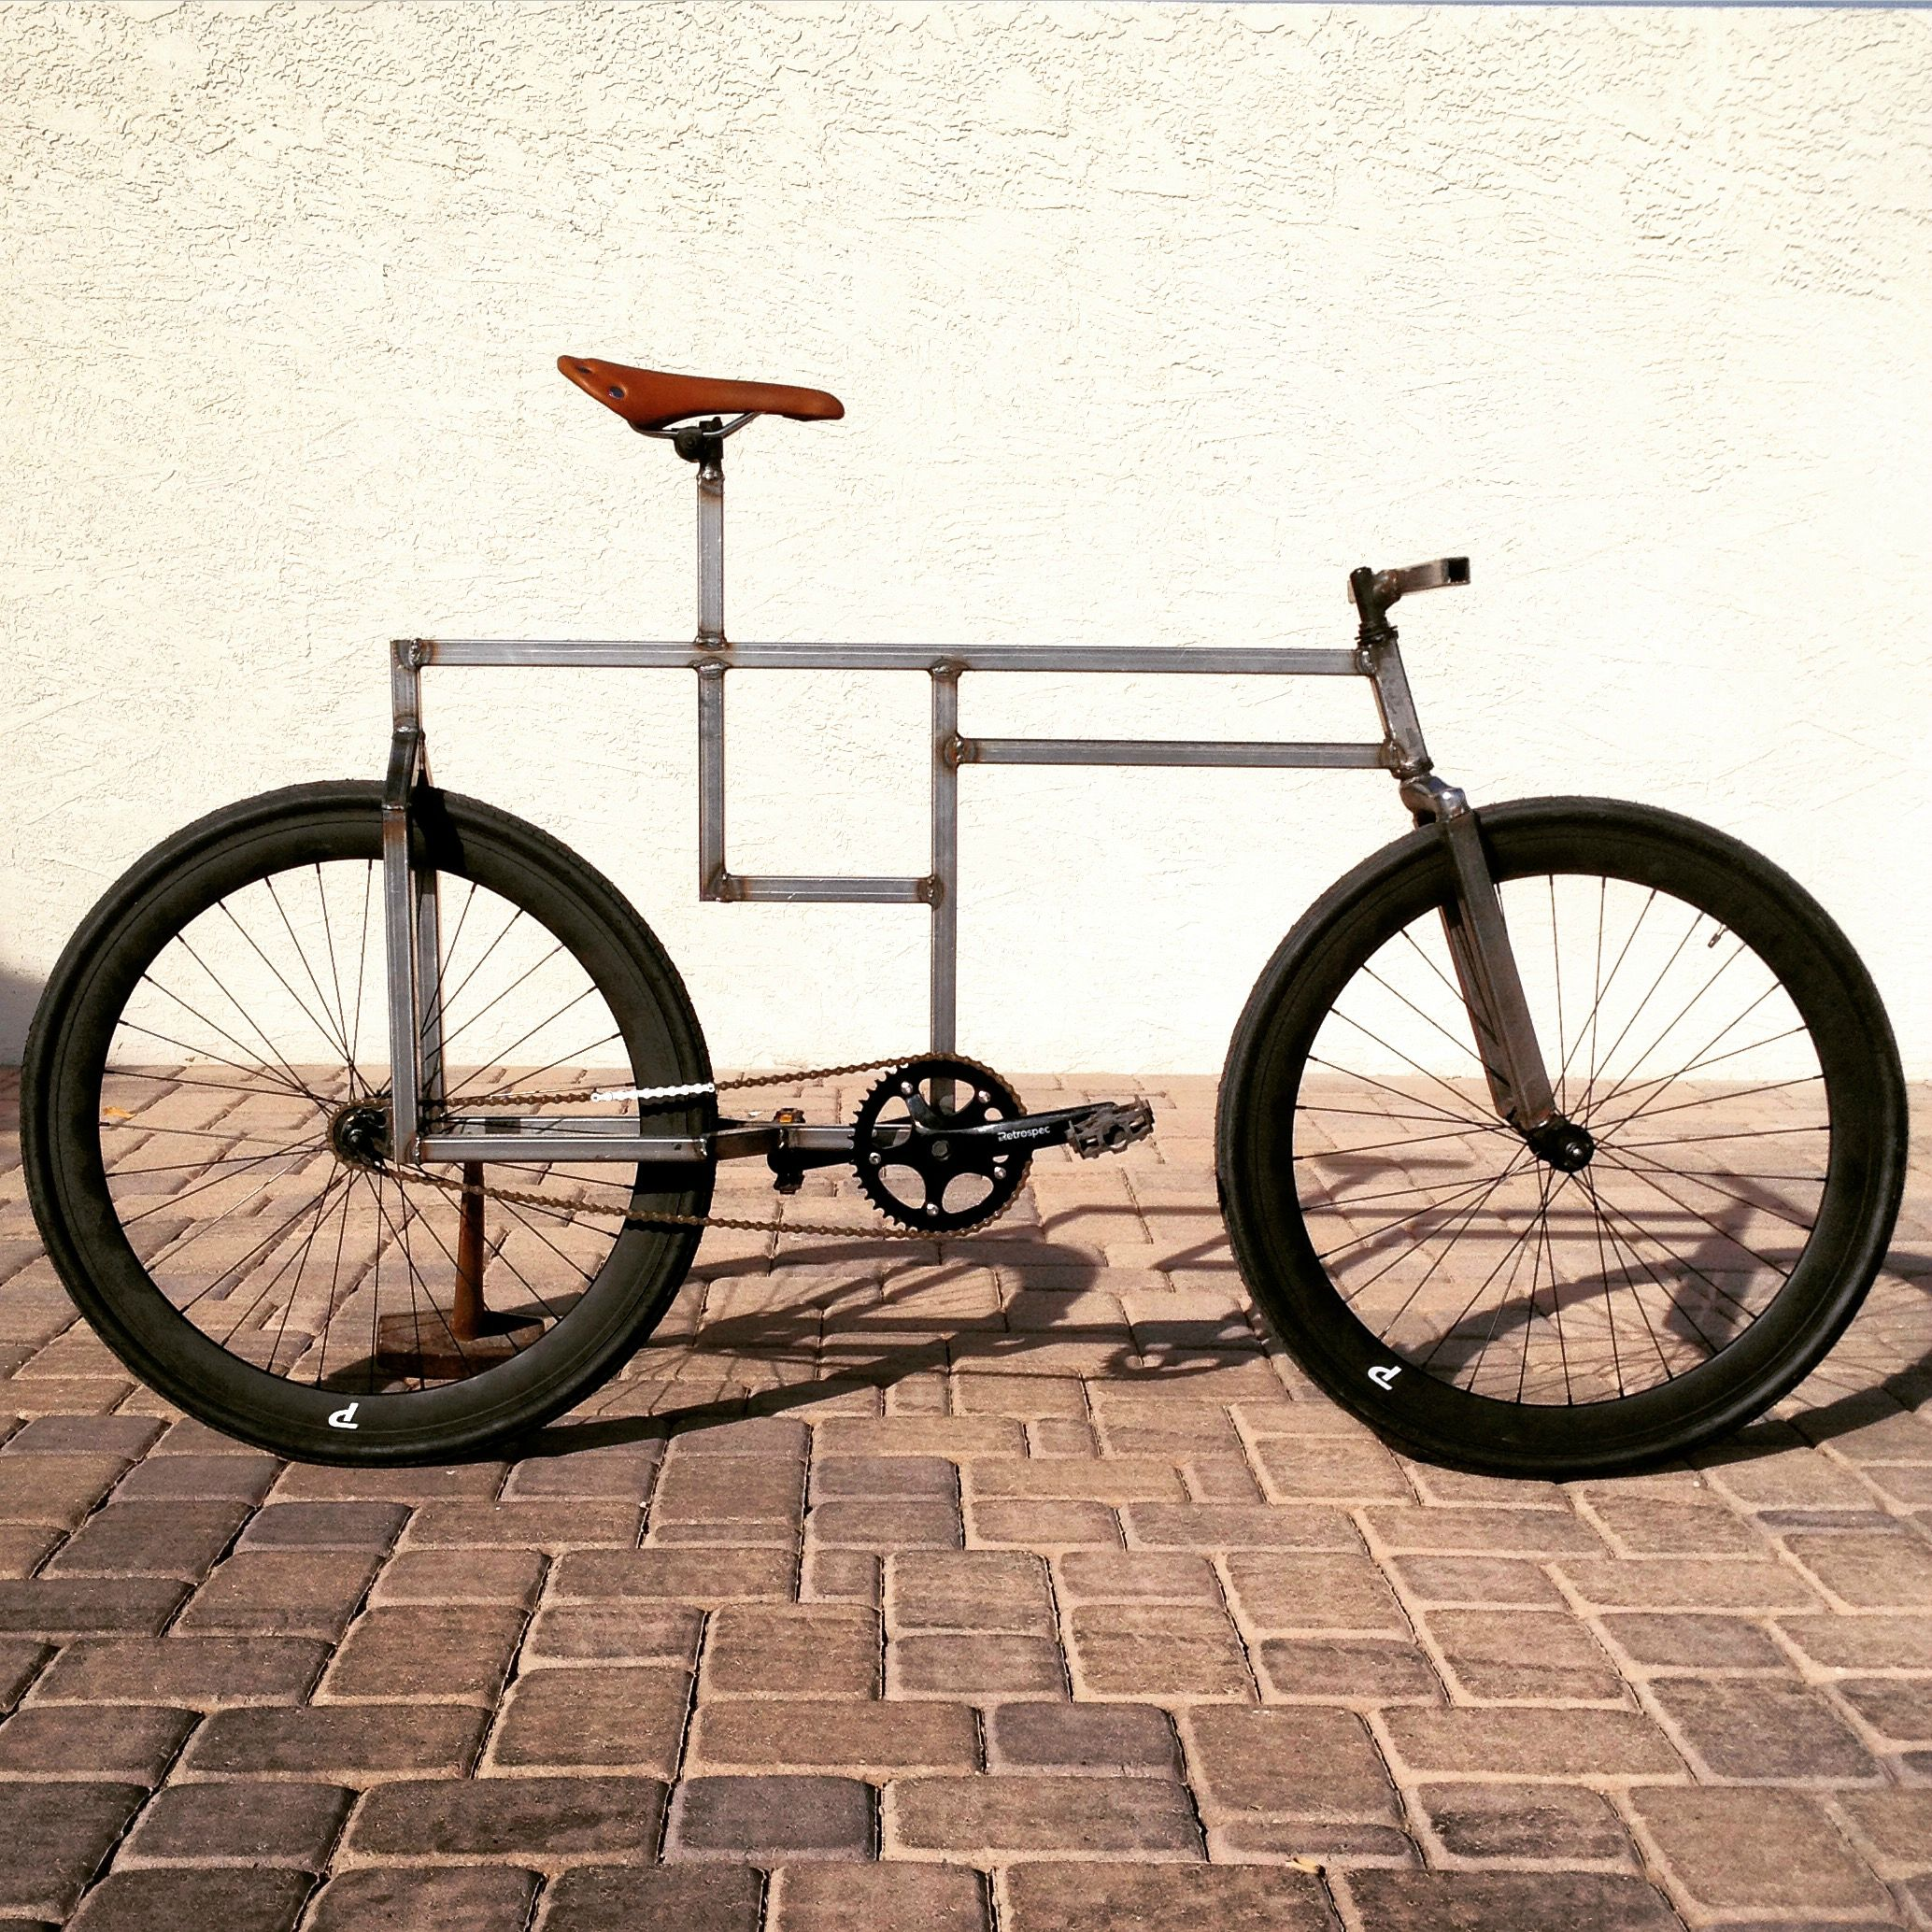 Check Out this Wacky Square-Framed Fixie Bike